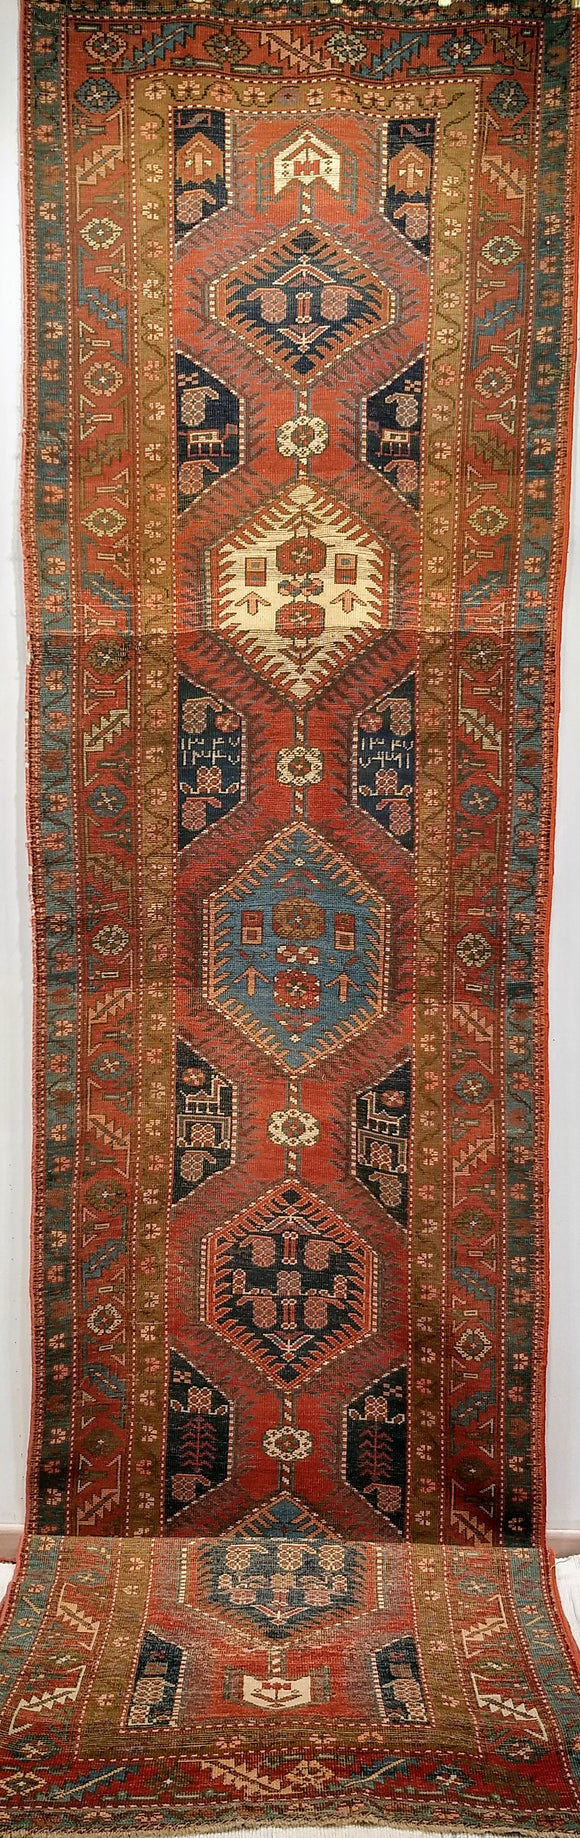 Antique Persian Heriz Runner